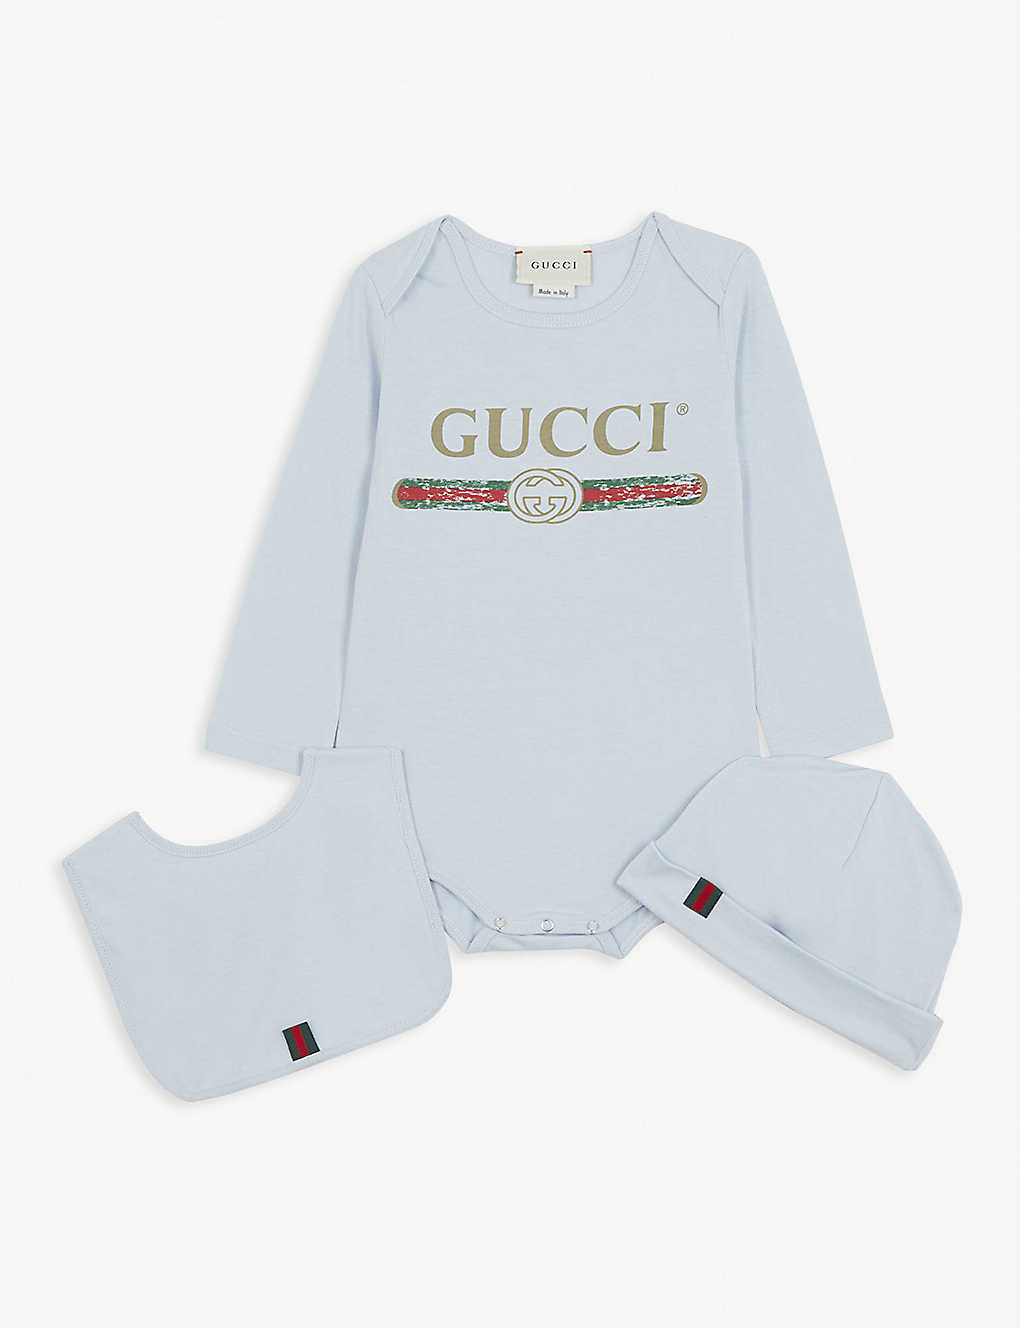 GUCCI: Logo cotton babygrow, hat and bib set